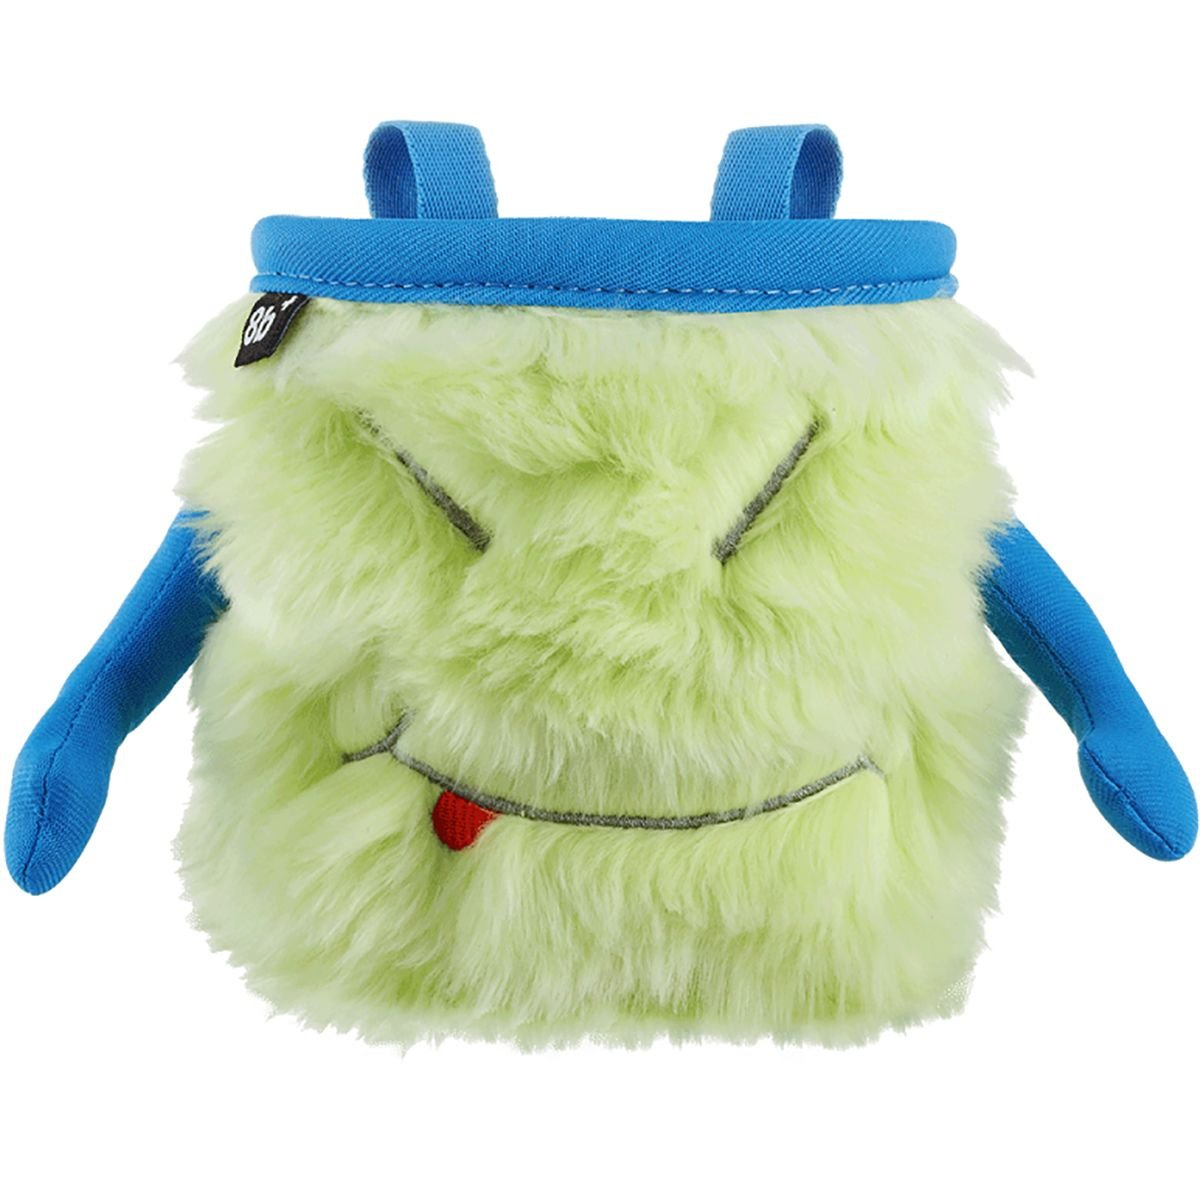 8bplus Chalk Bag (8b+) - 8b plus - Freddy, Sepp & Friends, 8b+ Chalkbag:Kiki: Amazon.es: Deportes y aire libre